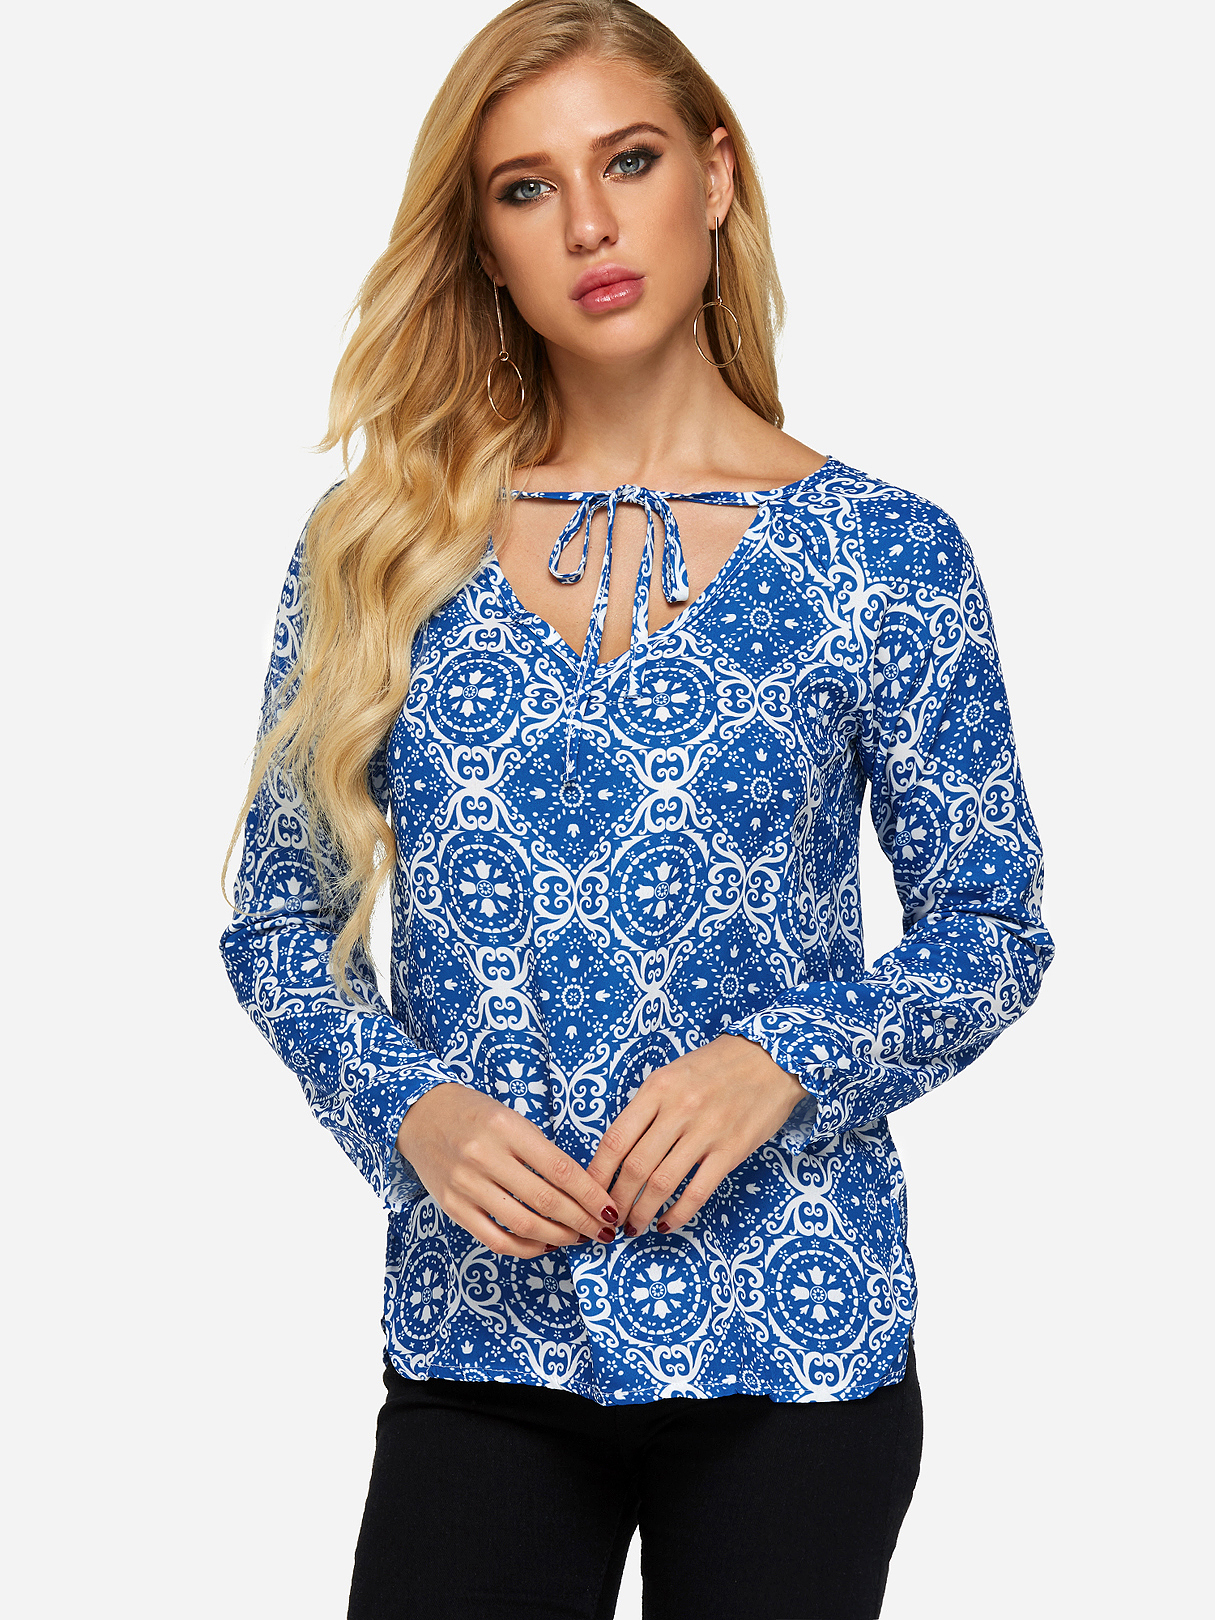 Blue Lace-up Design Tribal Print V-neck Long Sleeves T-shirt тепловая пушка ресанта тгп 50000